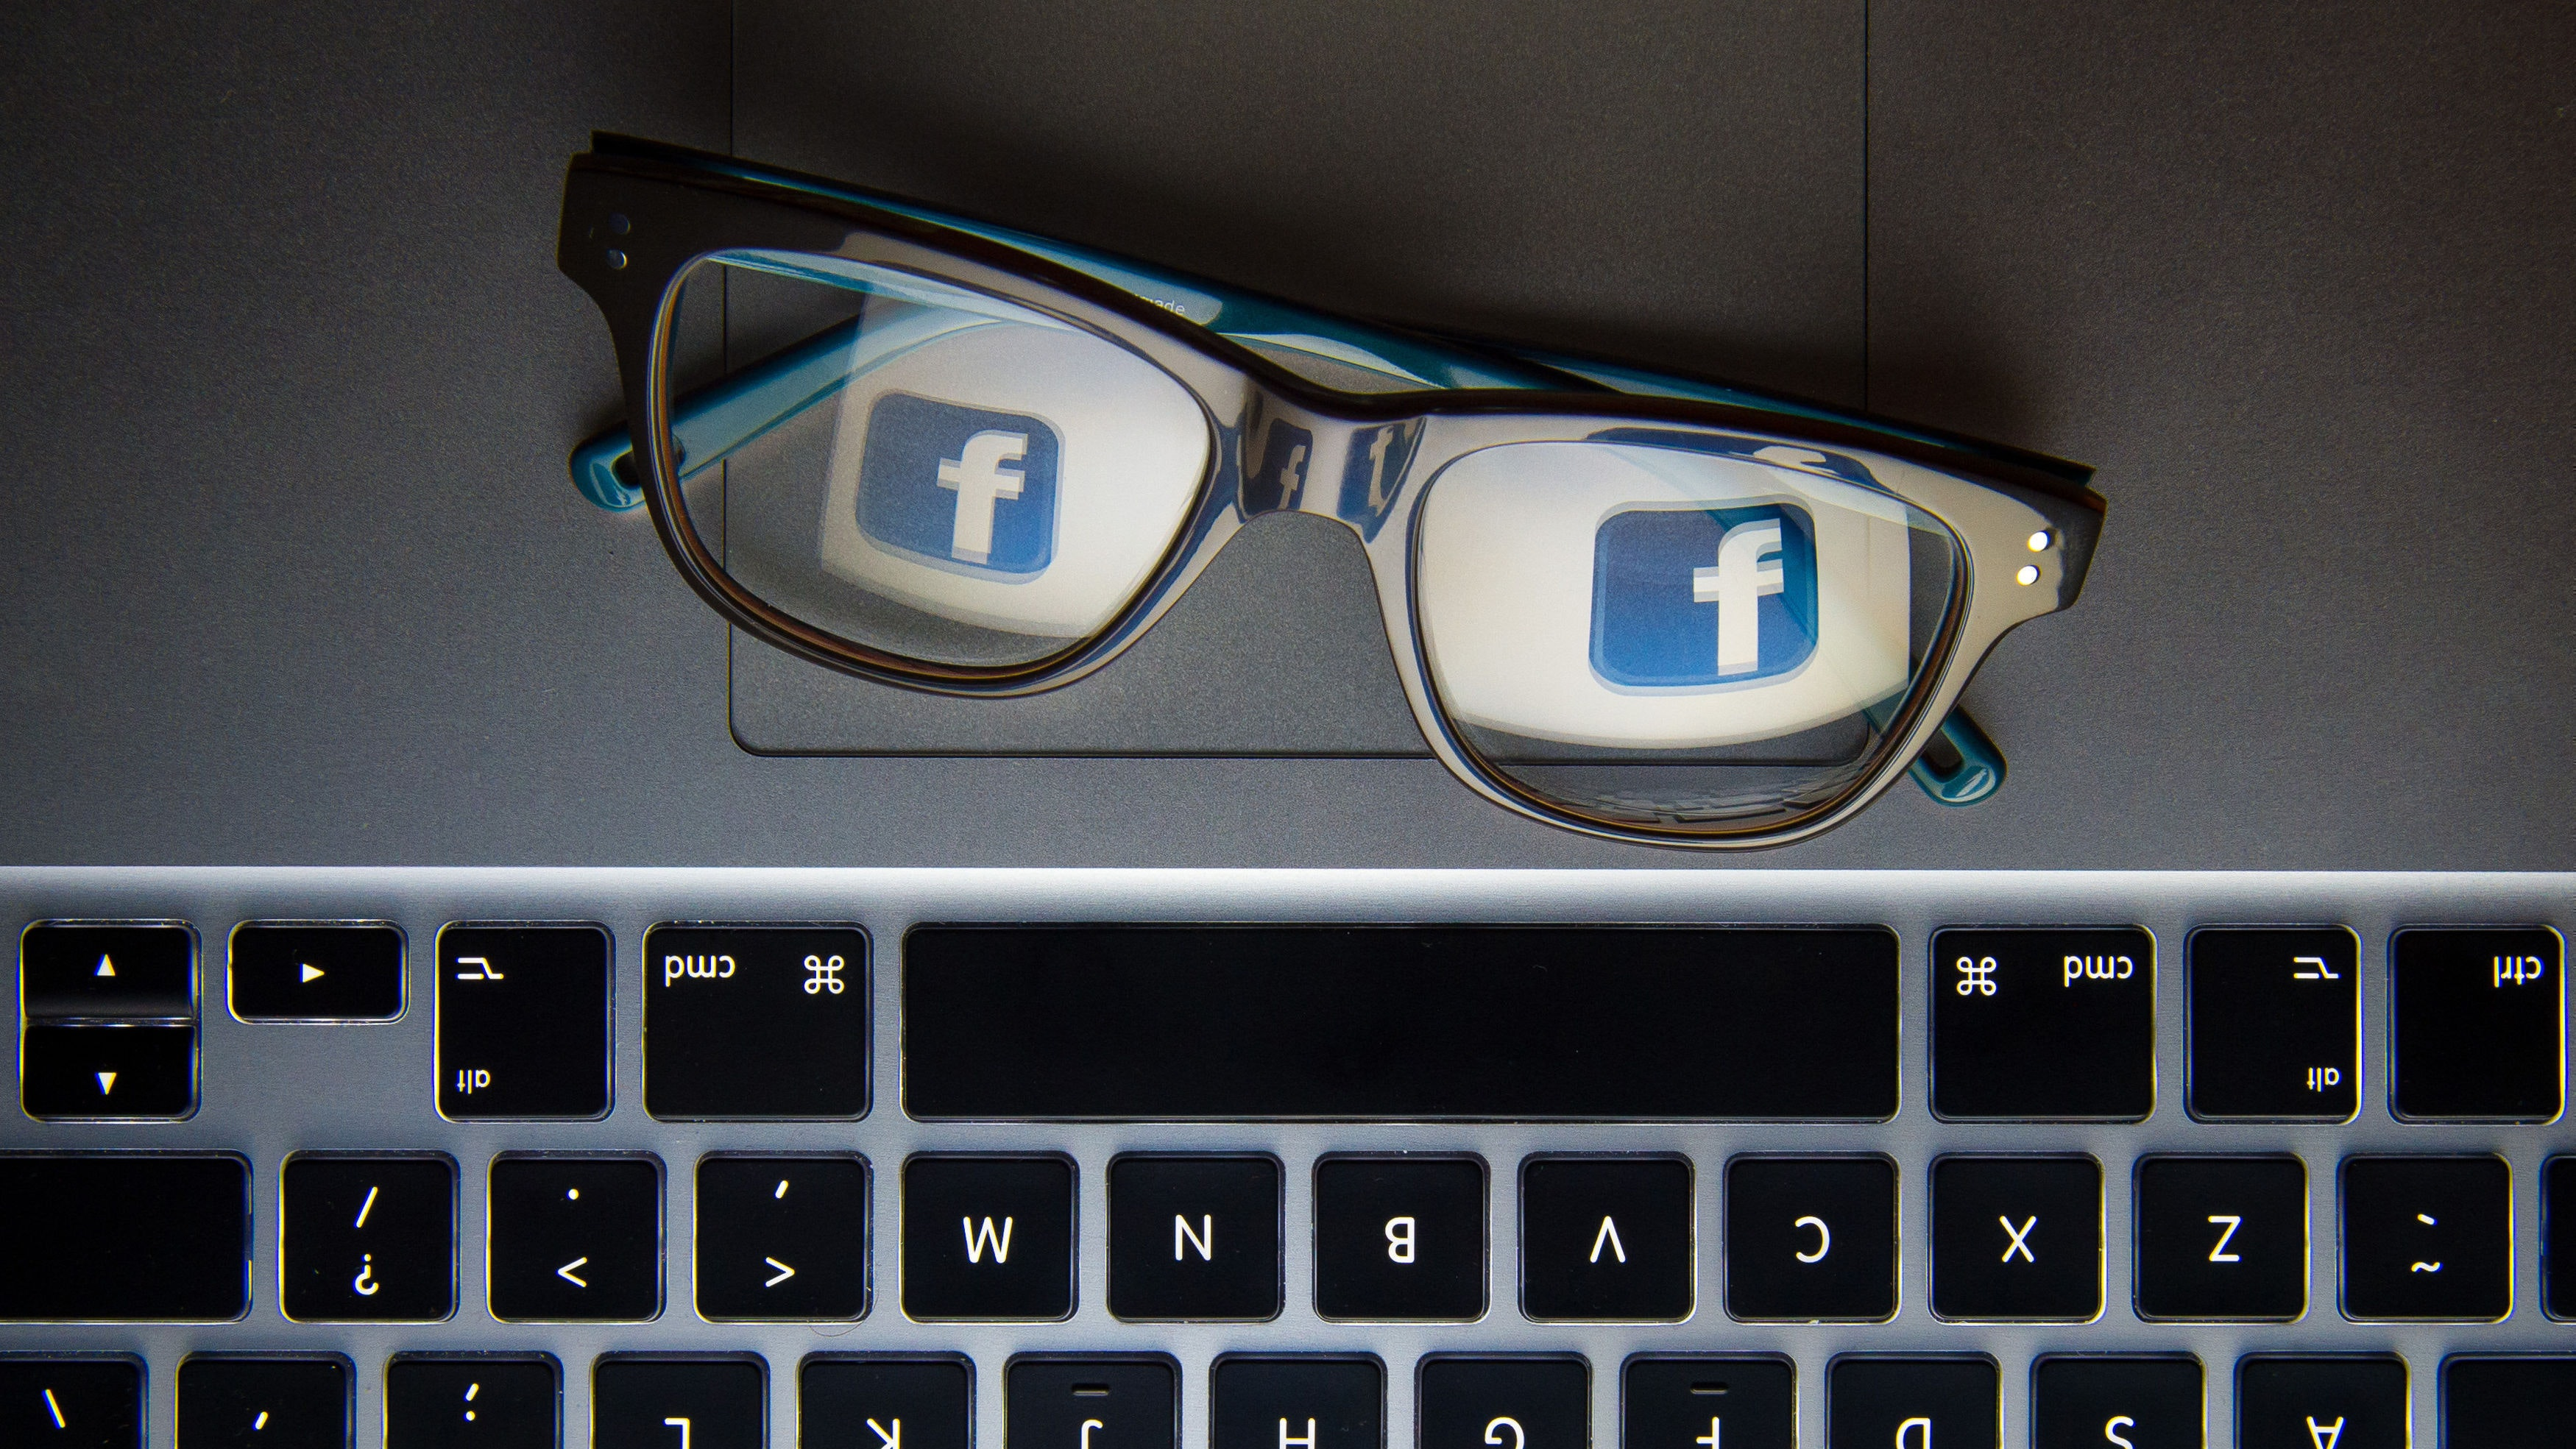 Widespread Facebook outages reported online